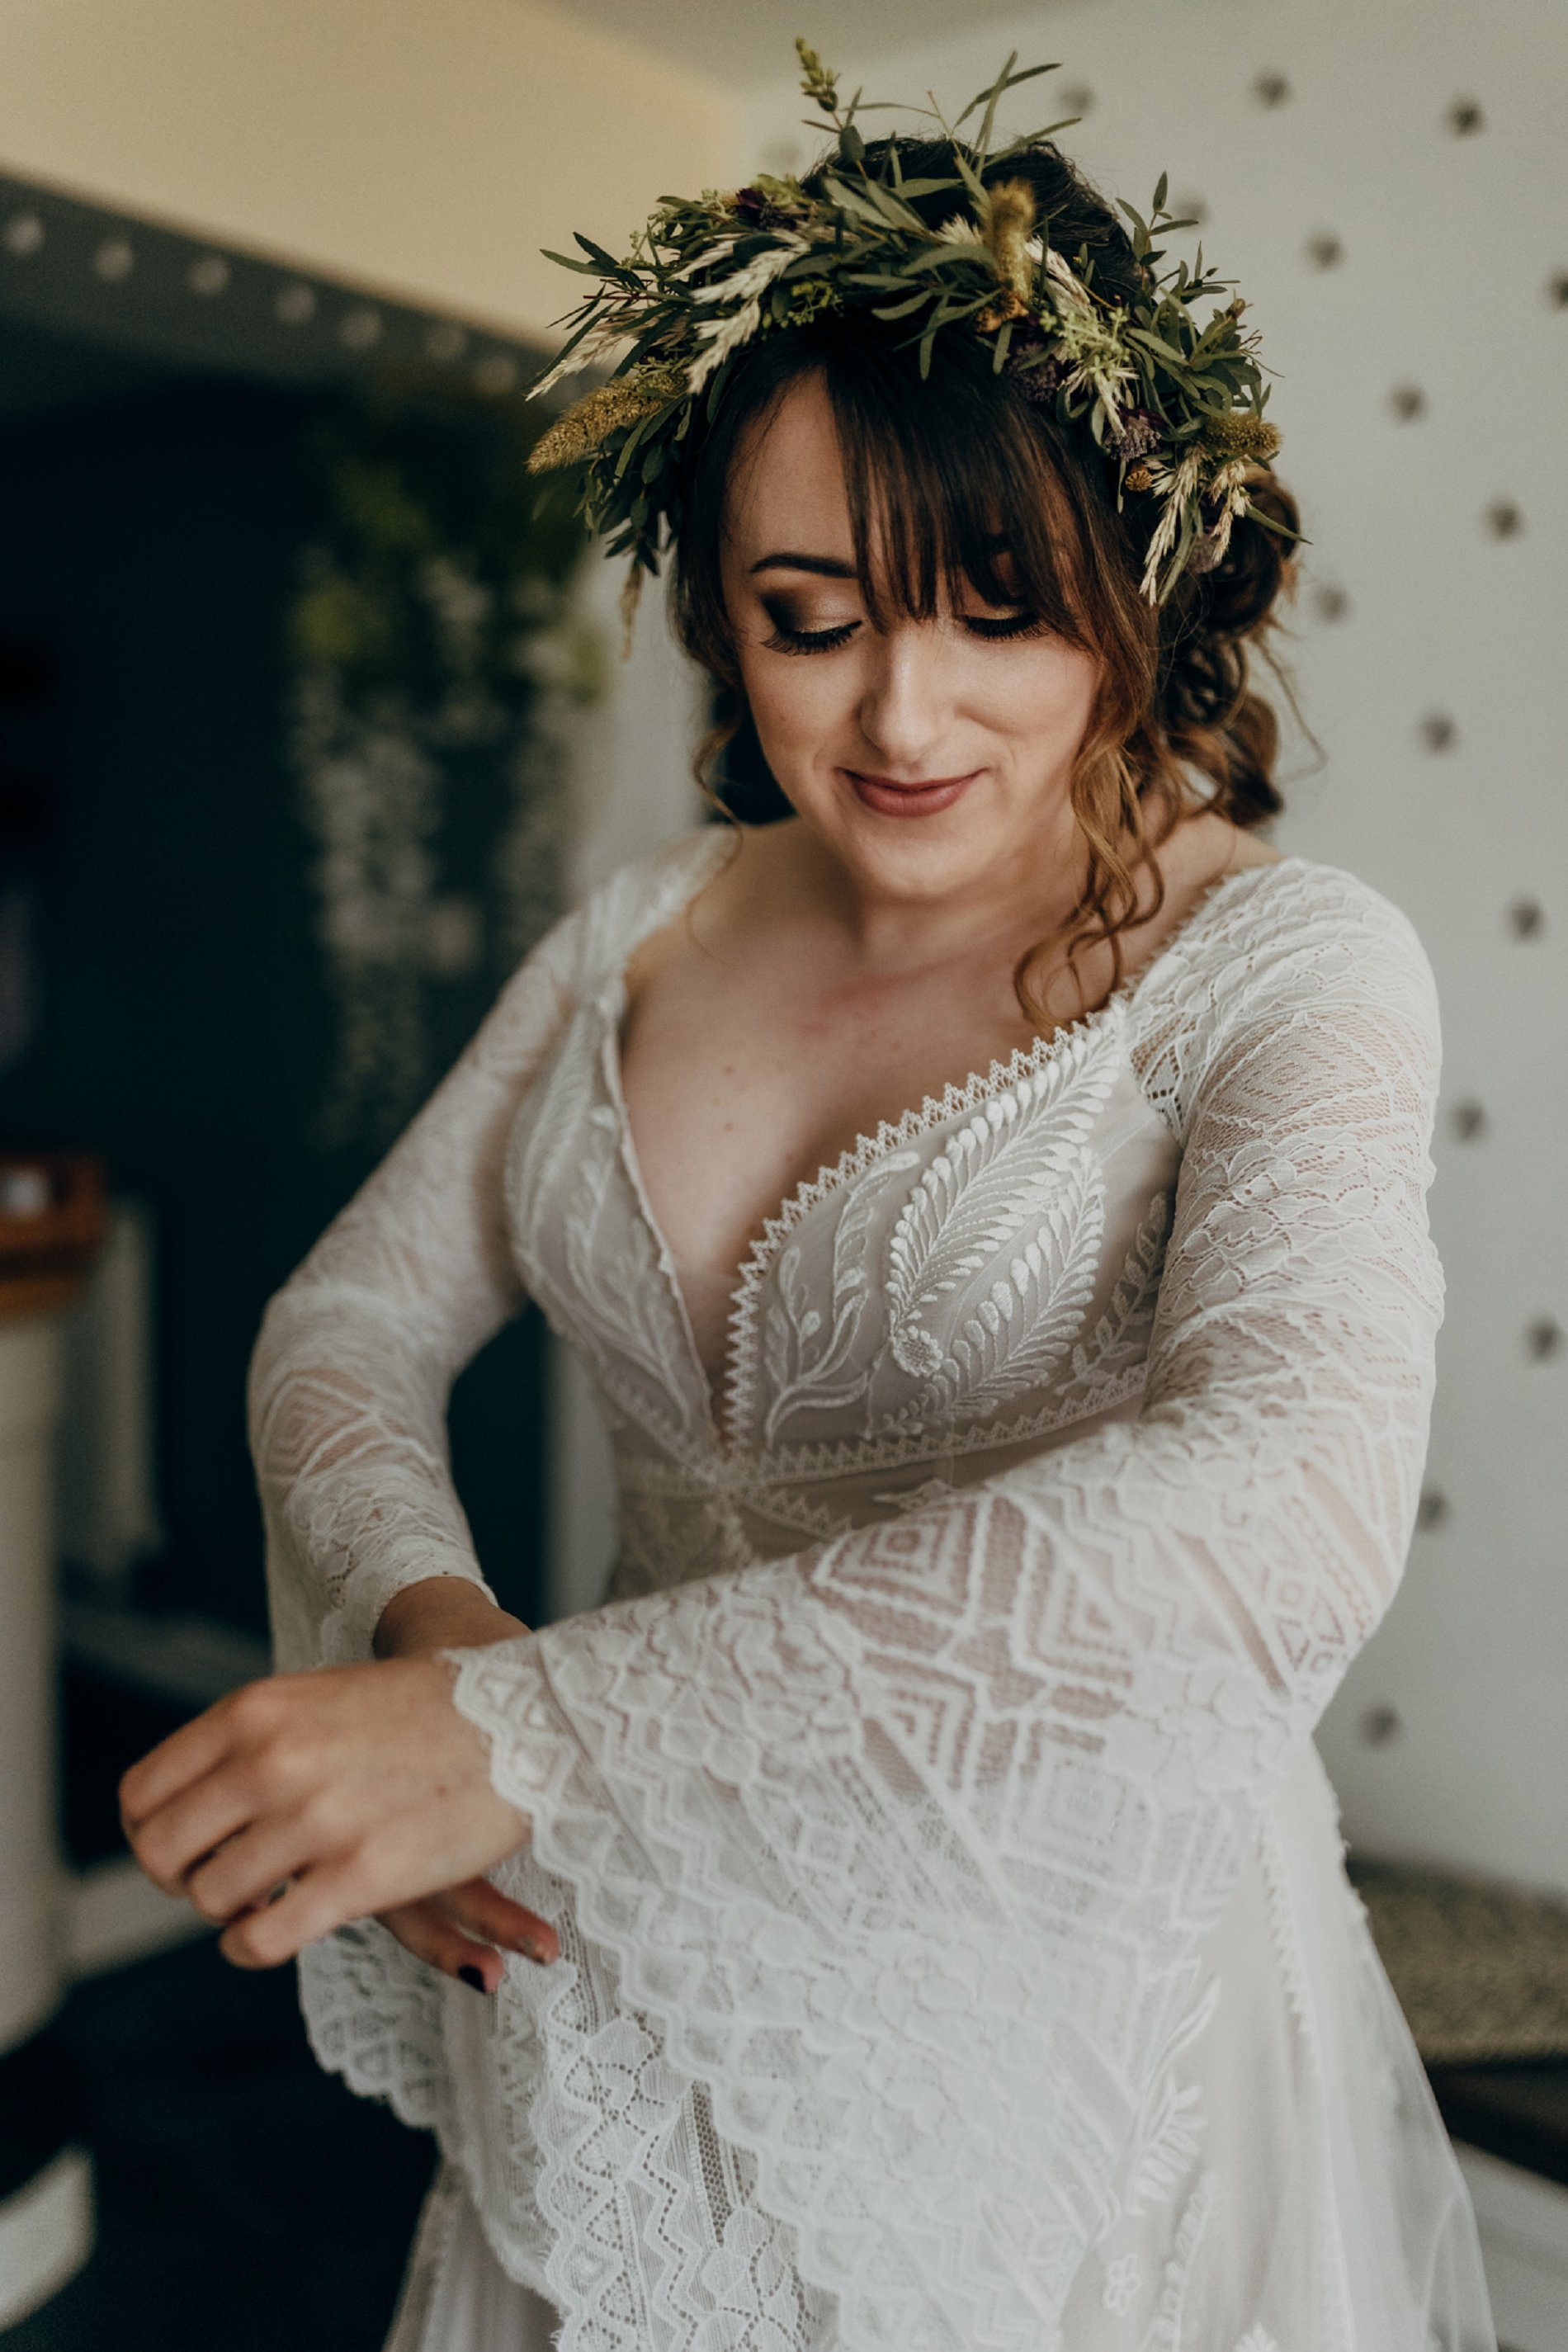 Northumberland Elopement (c) Chocolate Chip Photography (23)